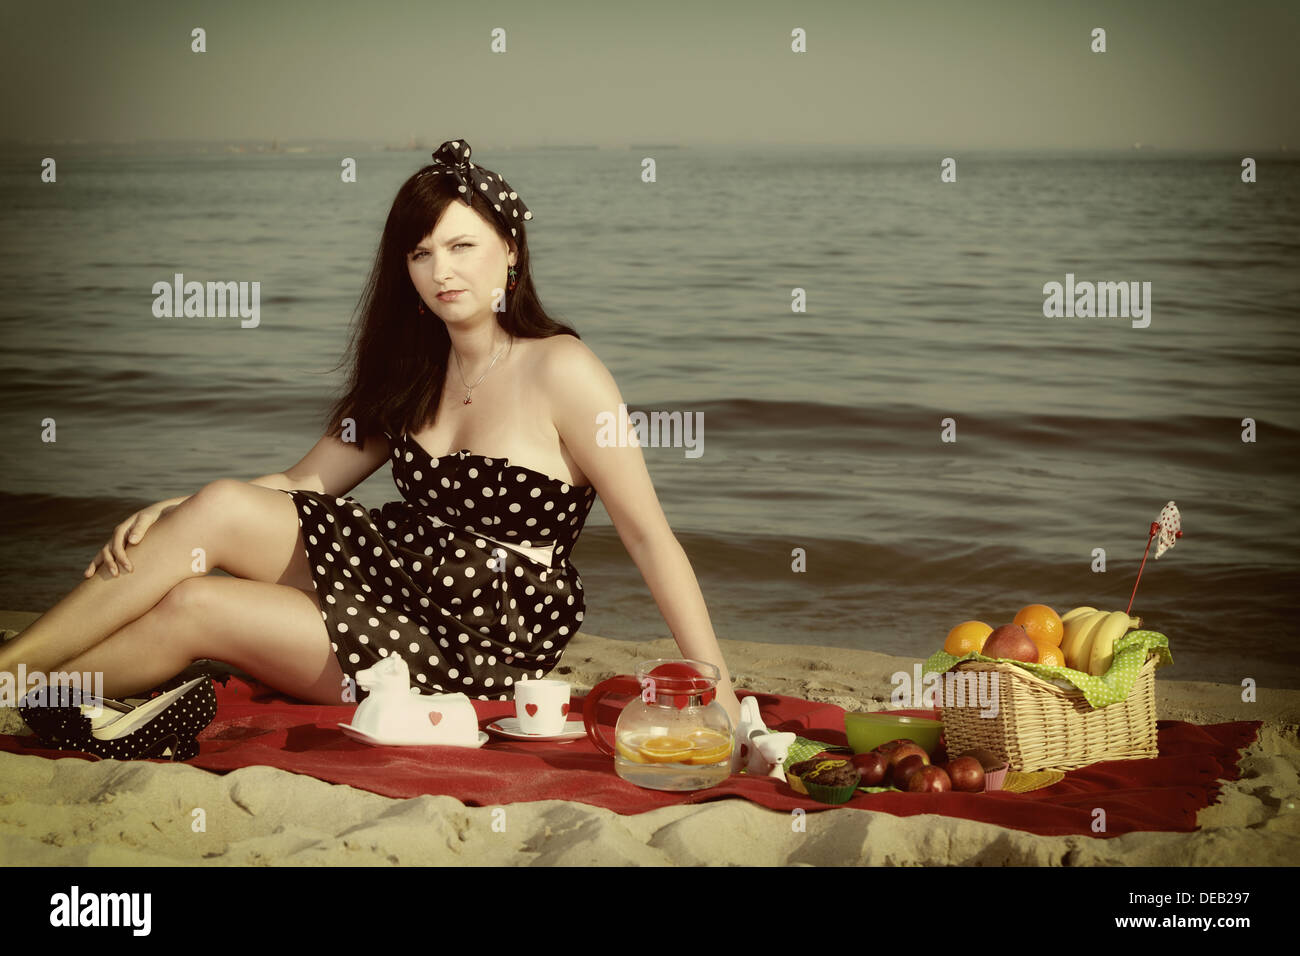 picknick im gr nen sch ne frau sitzen auf roten decke am sandstrand retro stil stockfoto bild. Black Bedroom Furniture Sets. Home Design Ideas